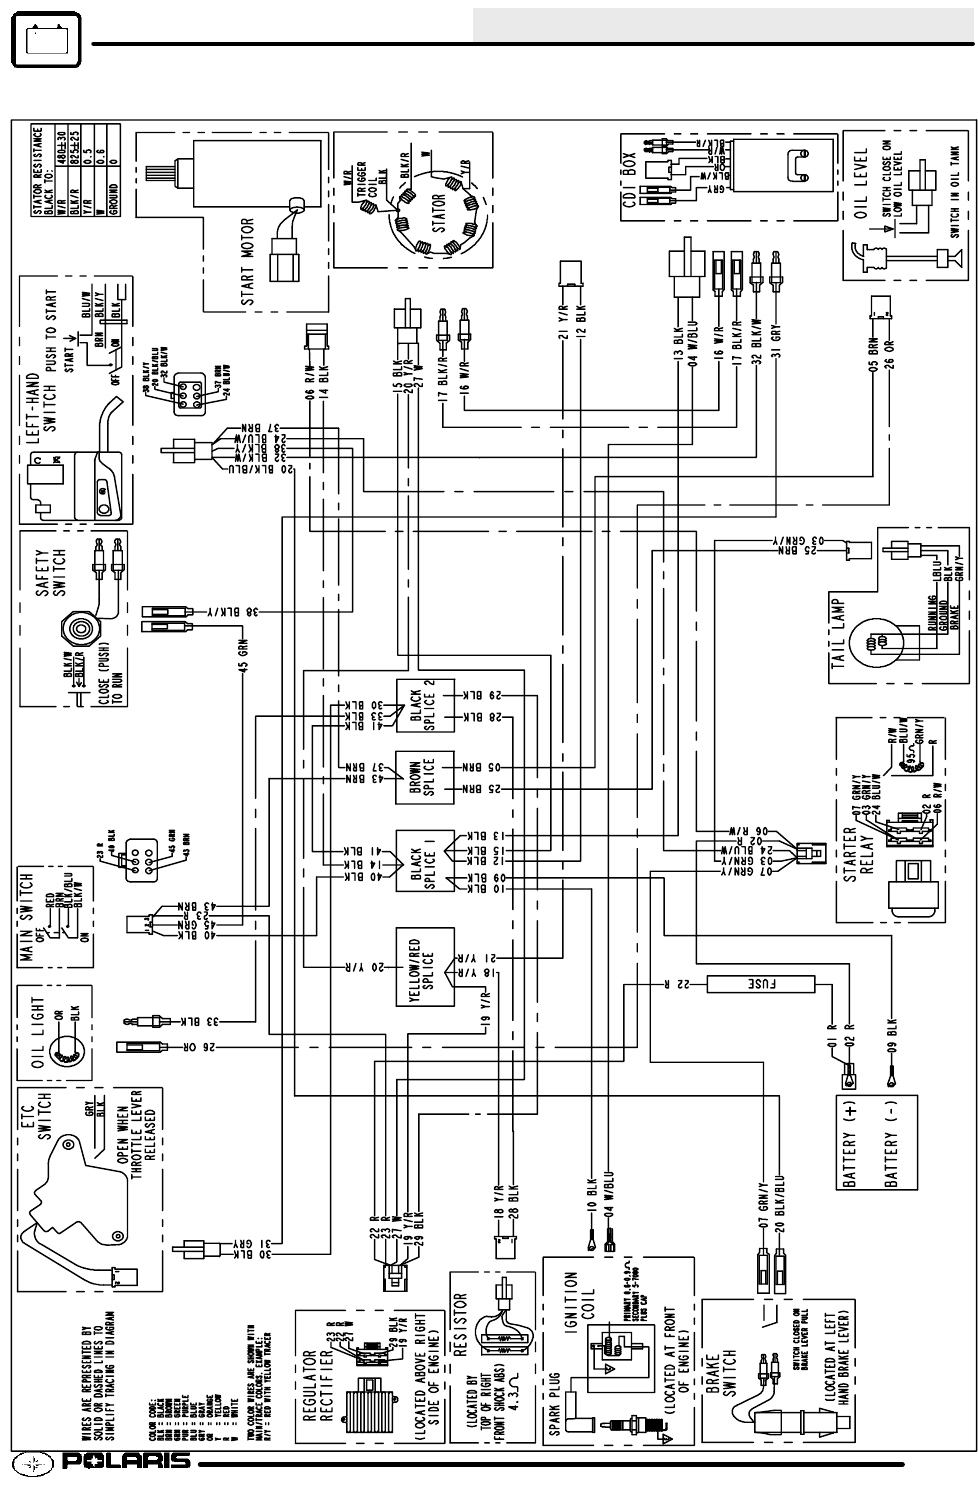 wiring boat diagram schematic